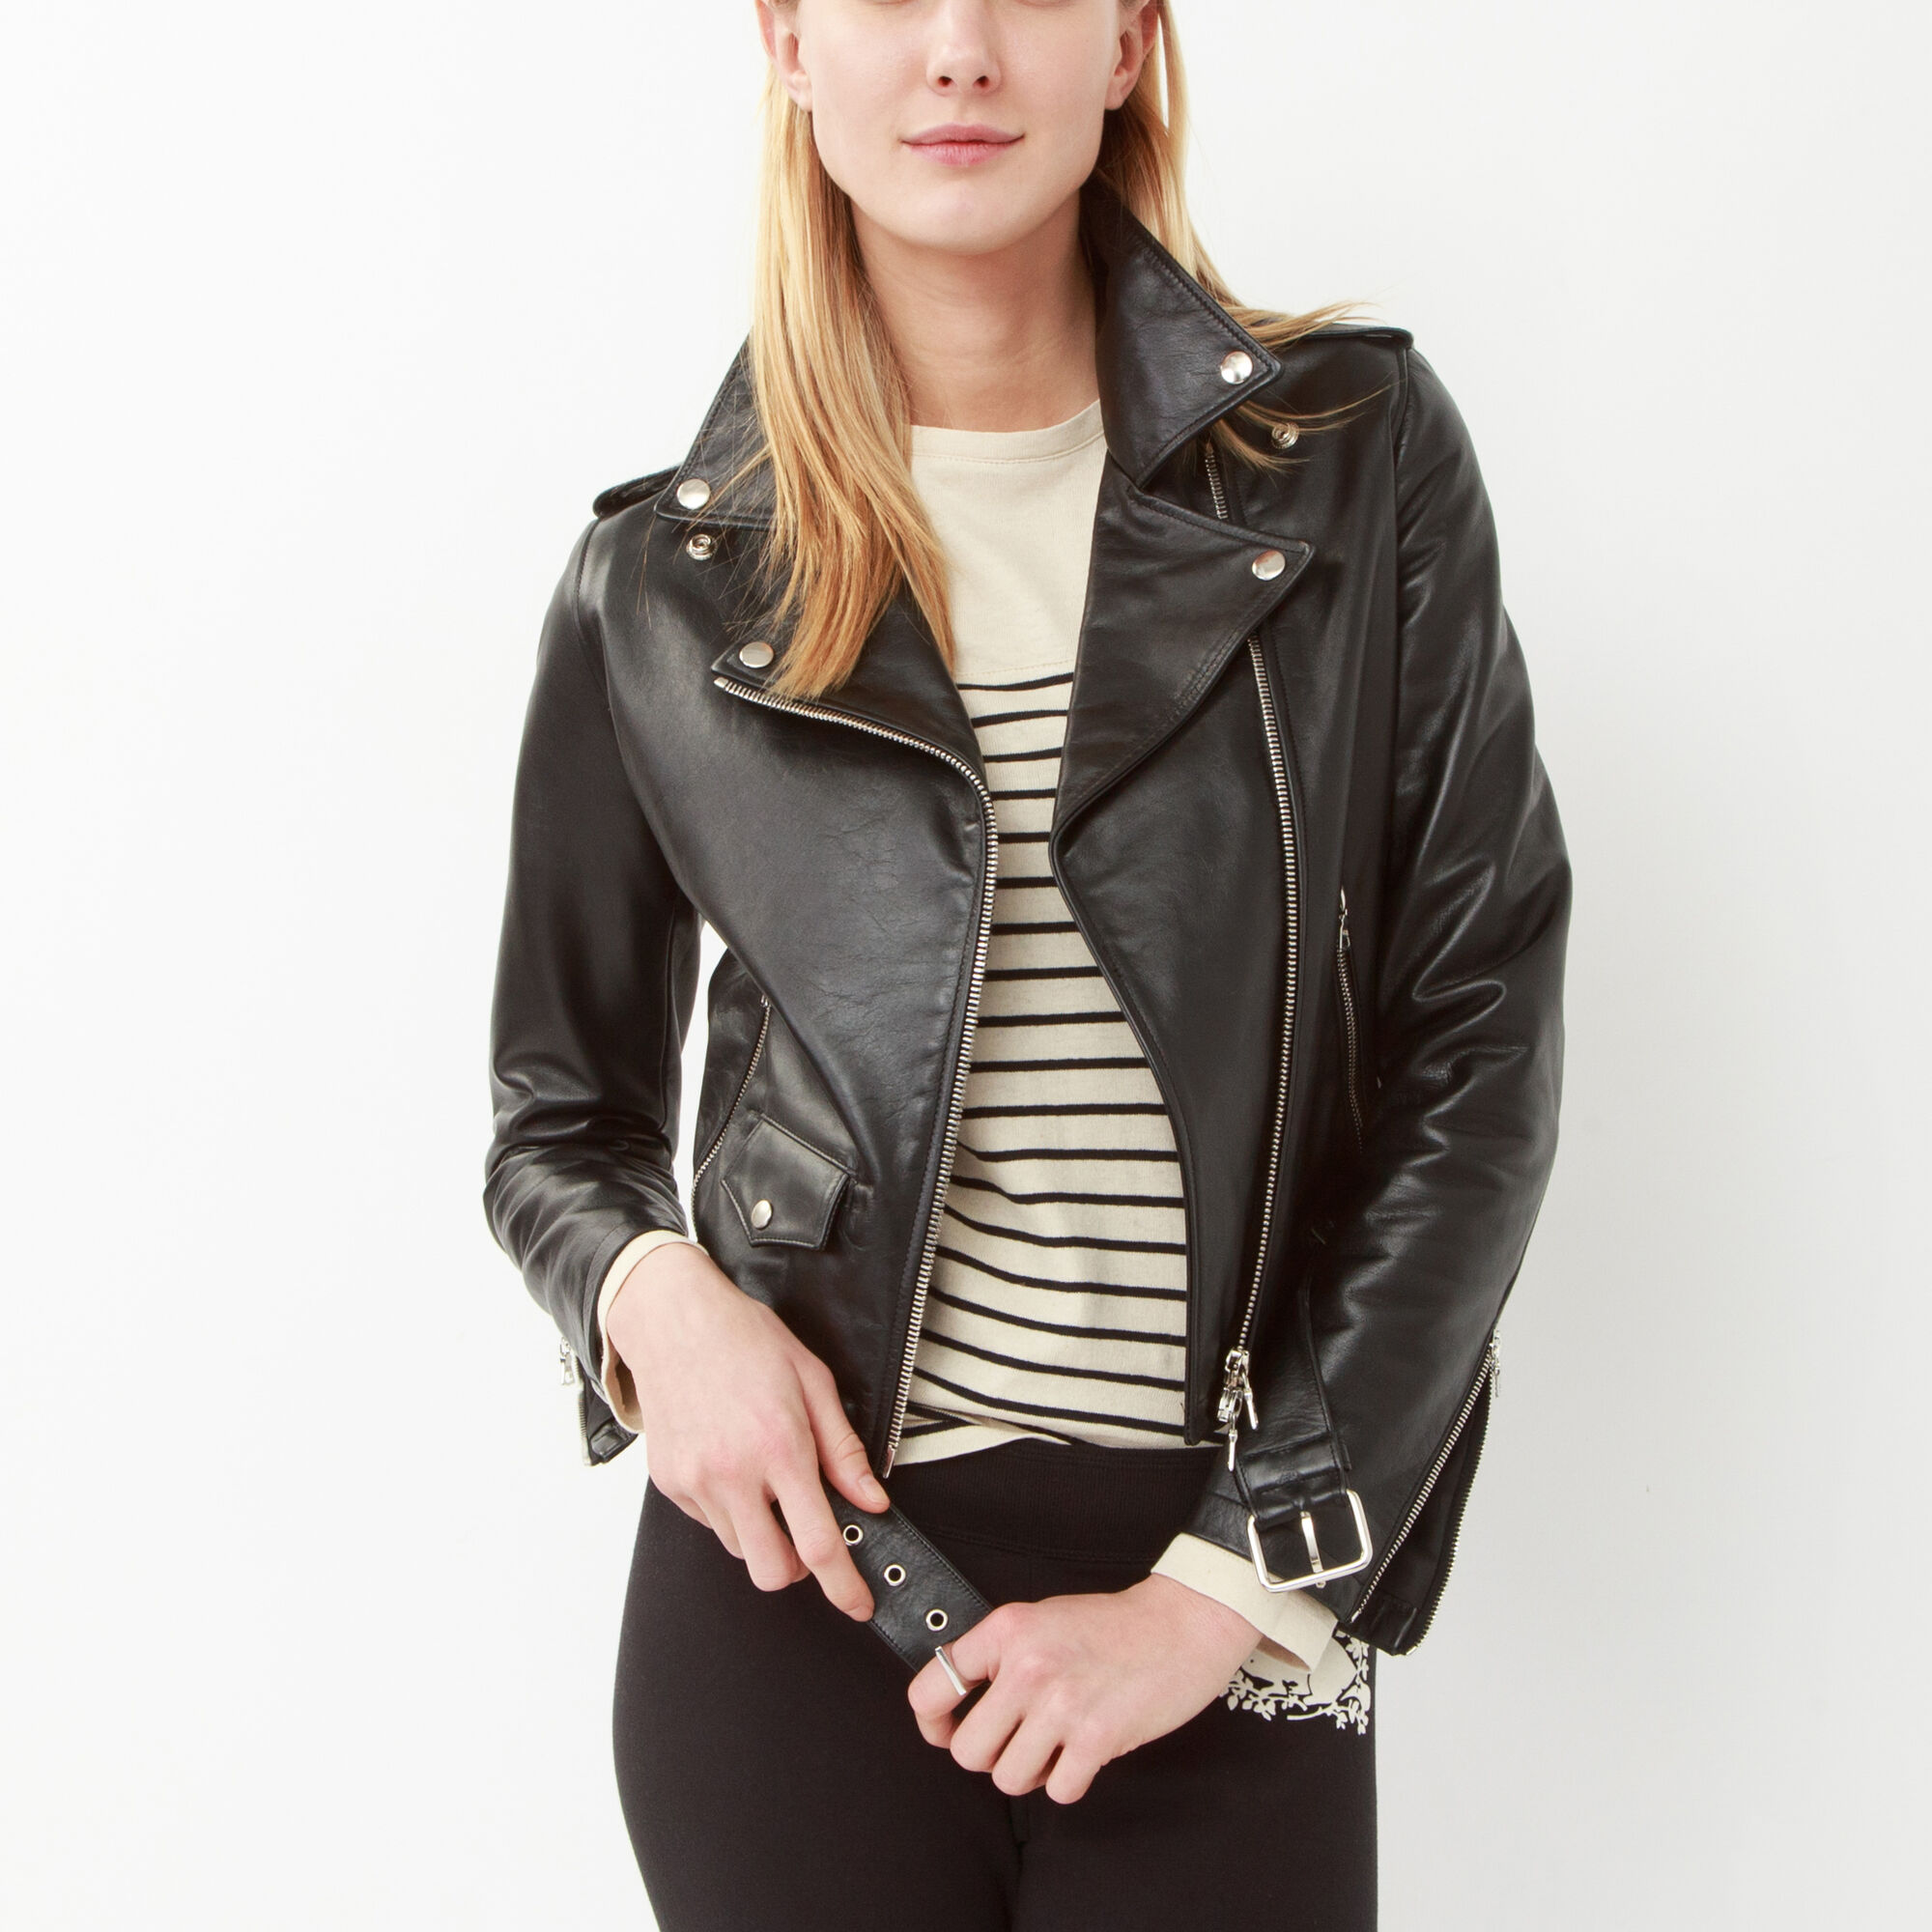 Women's motorcycle gear, apparel & leather clothing available at Fox Creek Leather.